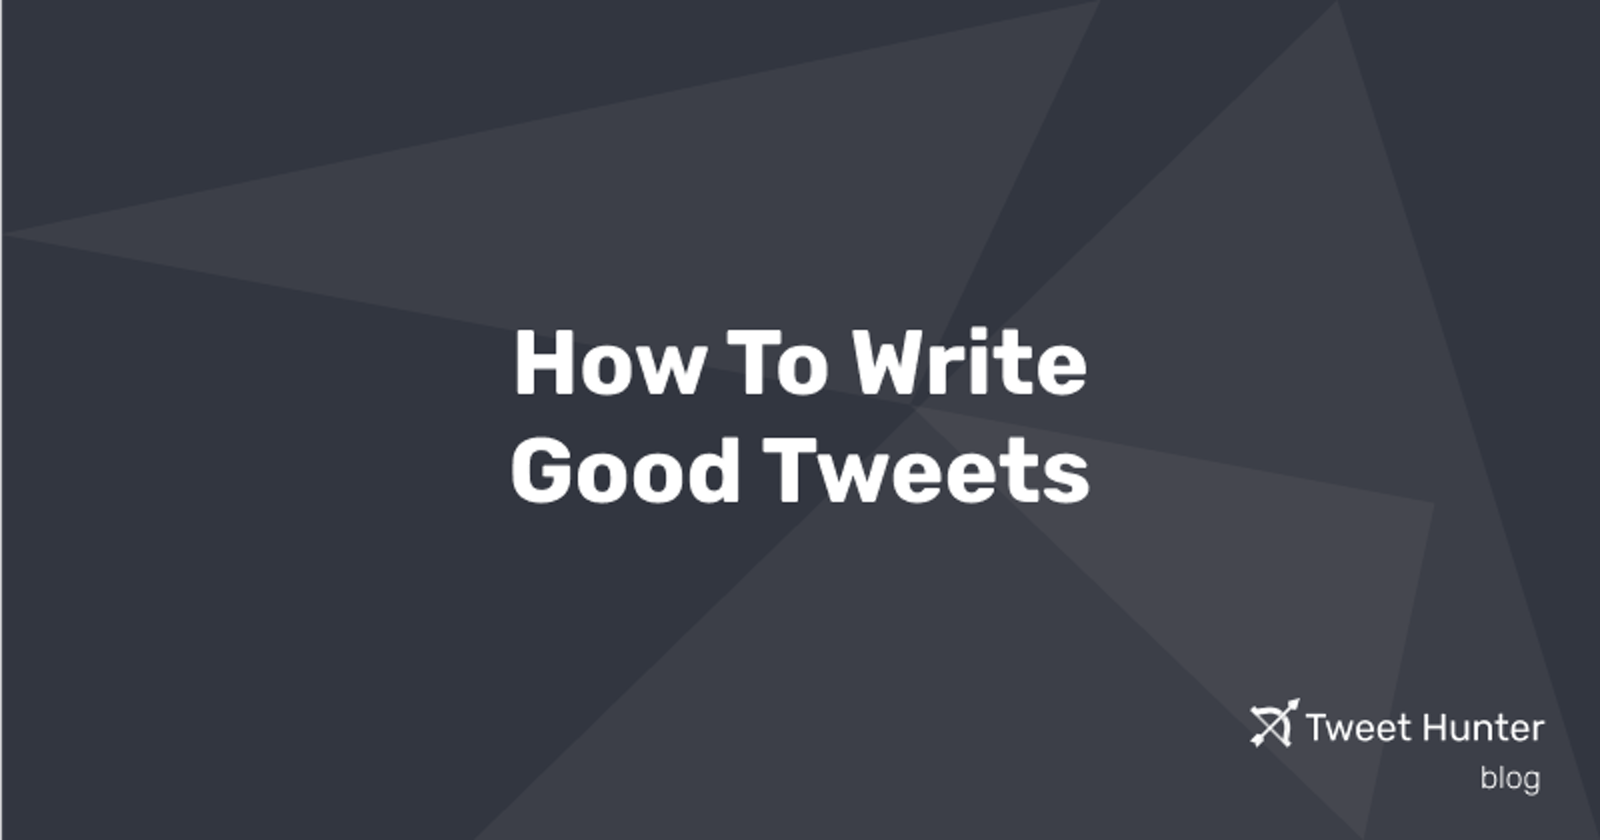 How to write good tweets